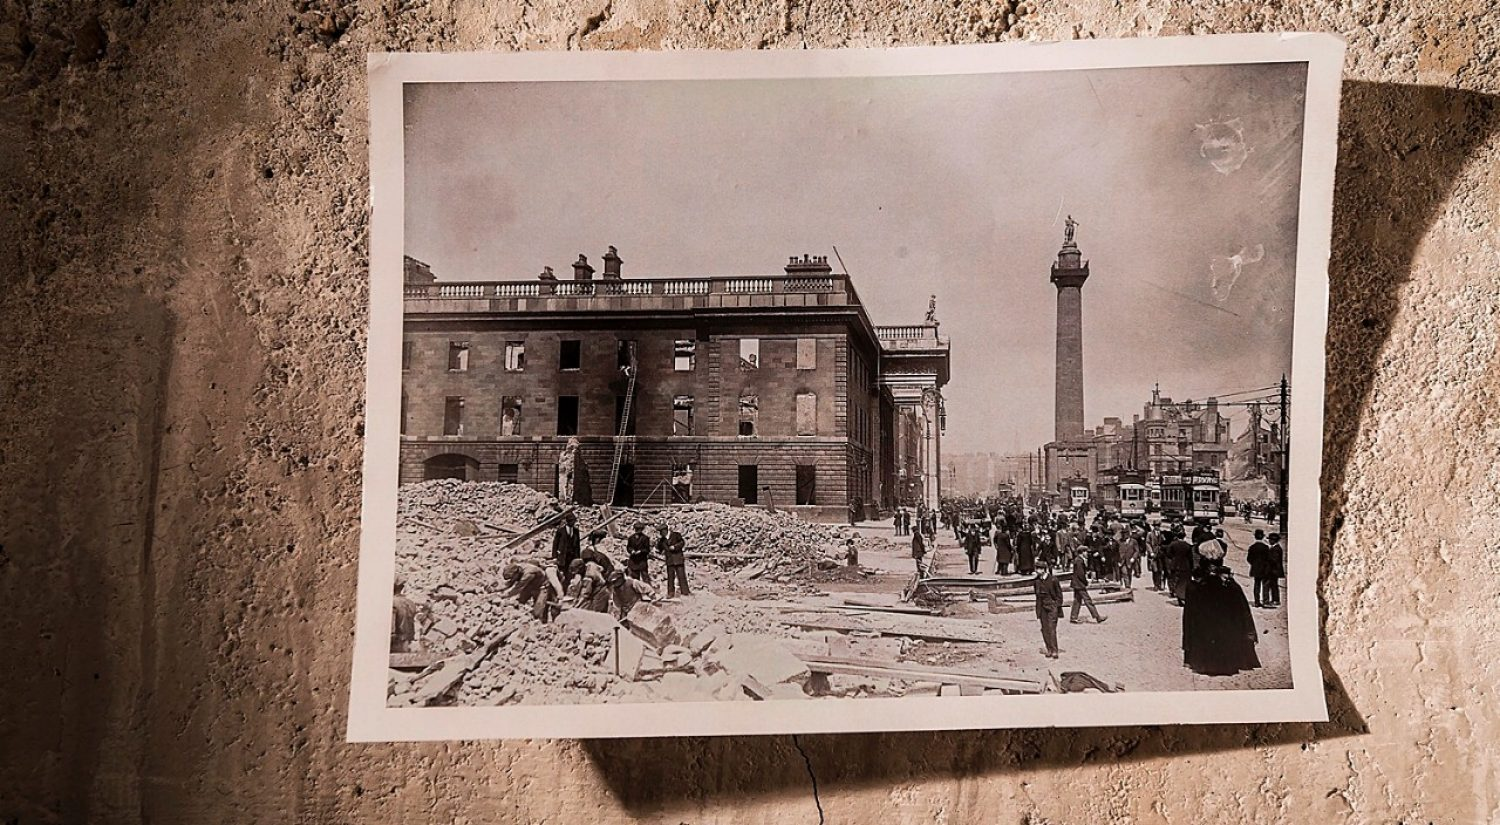 Easter Rising historical image of destruction in Dublin